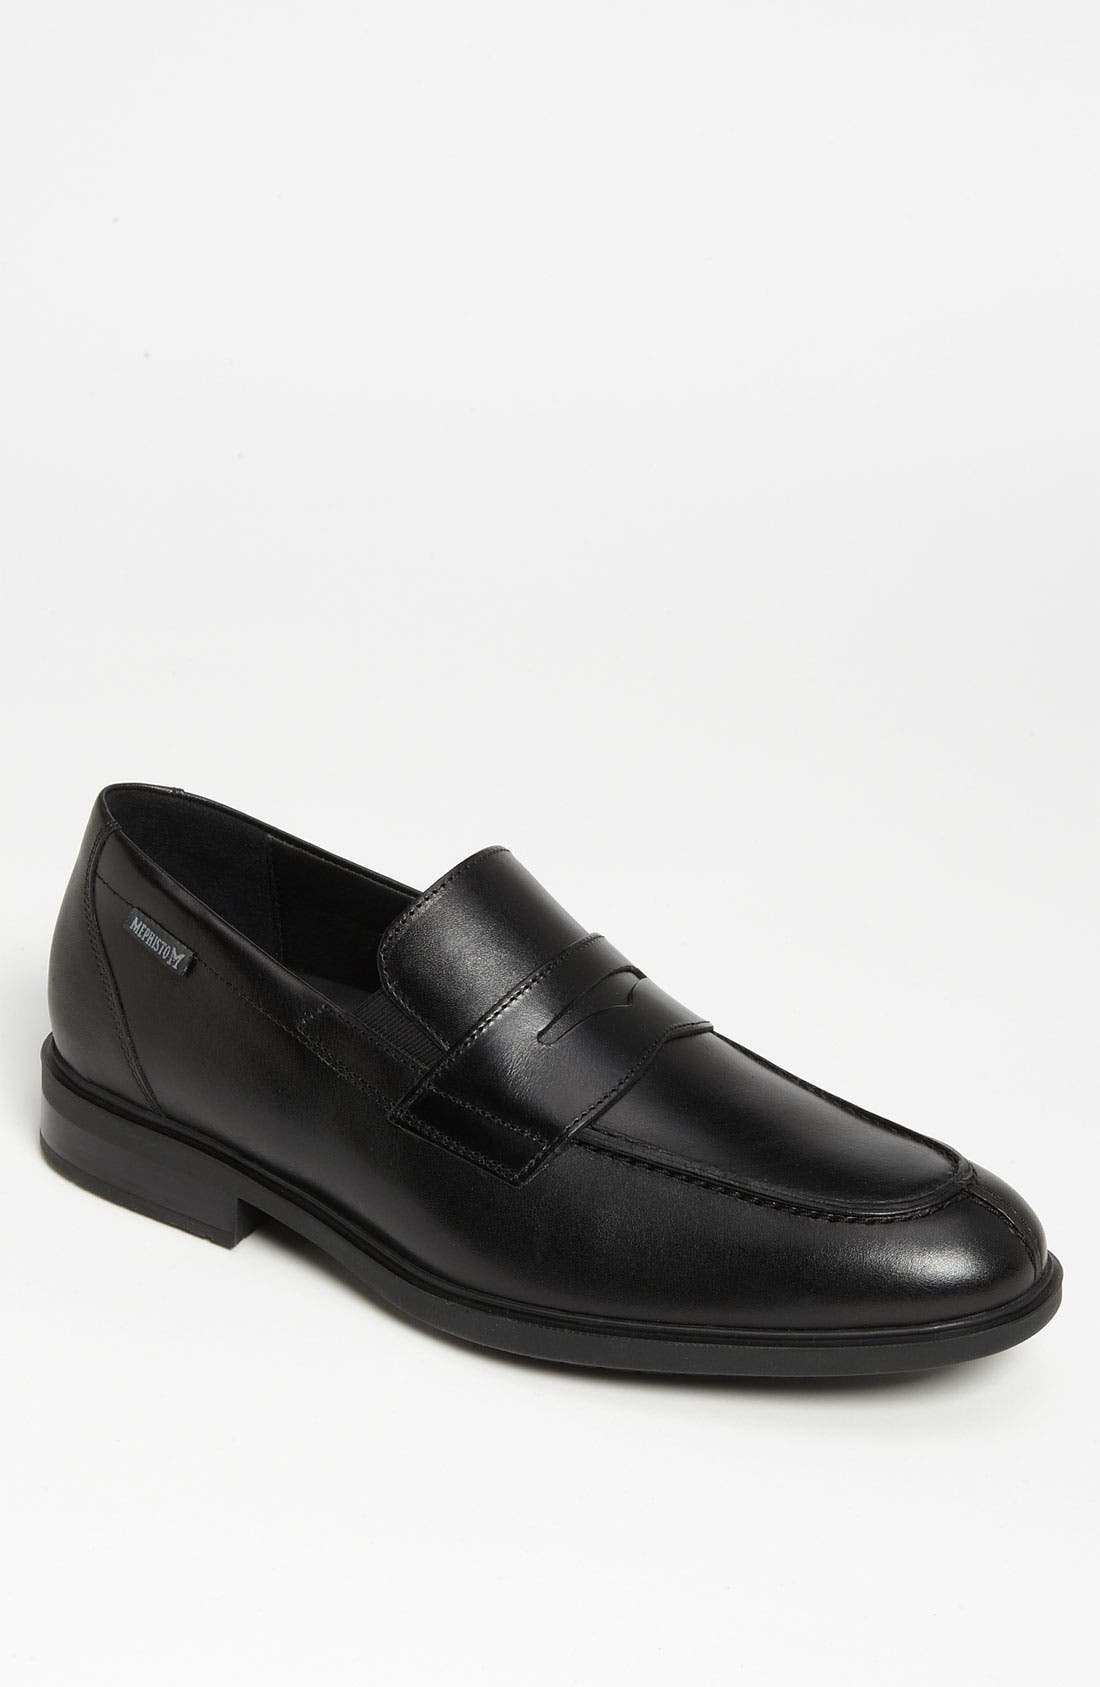 Fortino Loafer,                         Main,                         color, 001